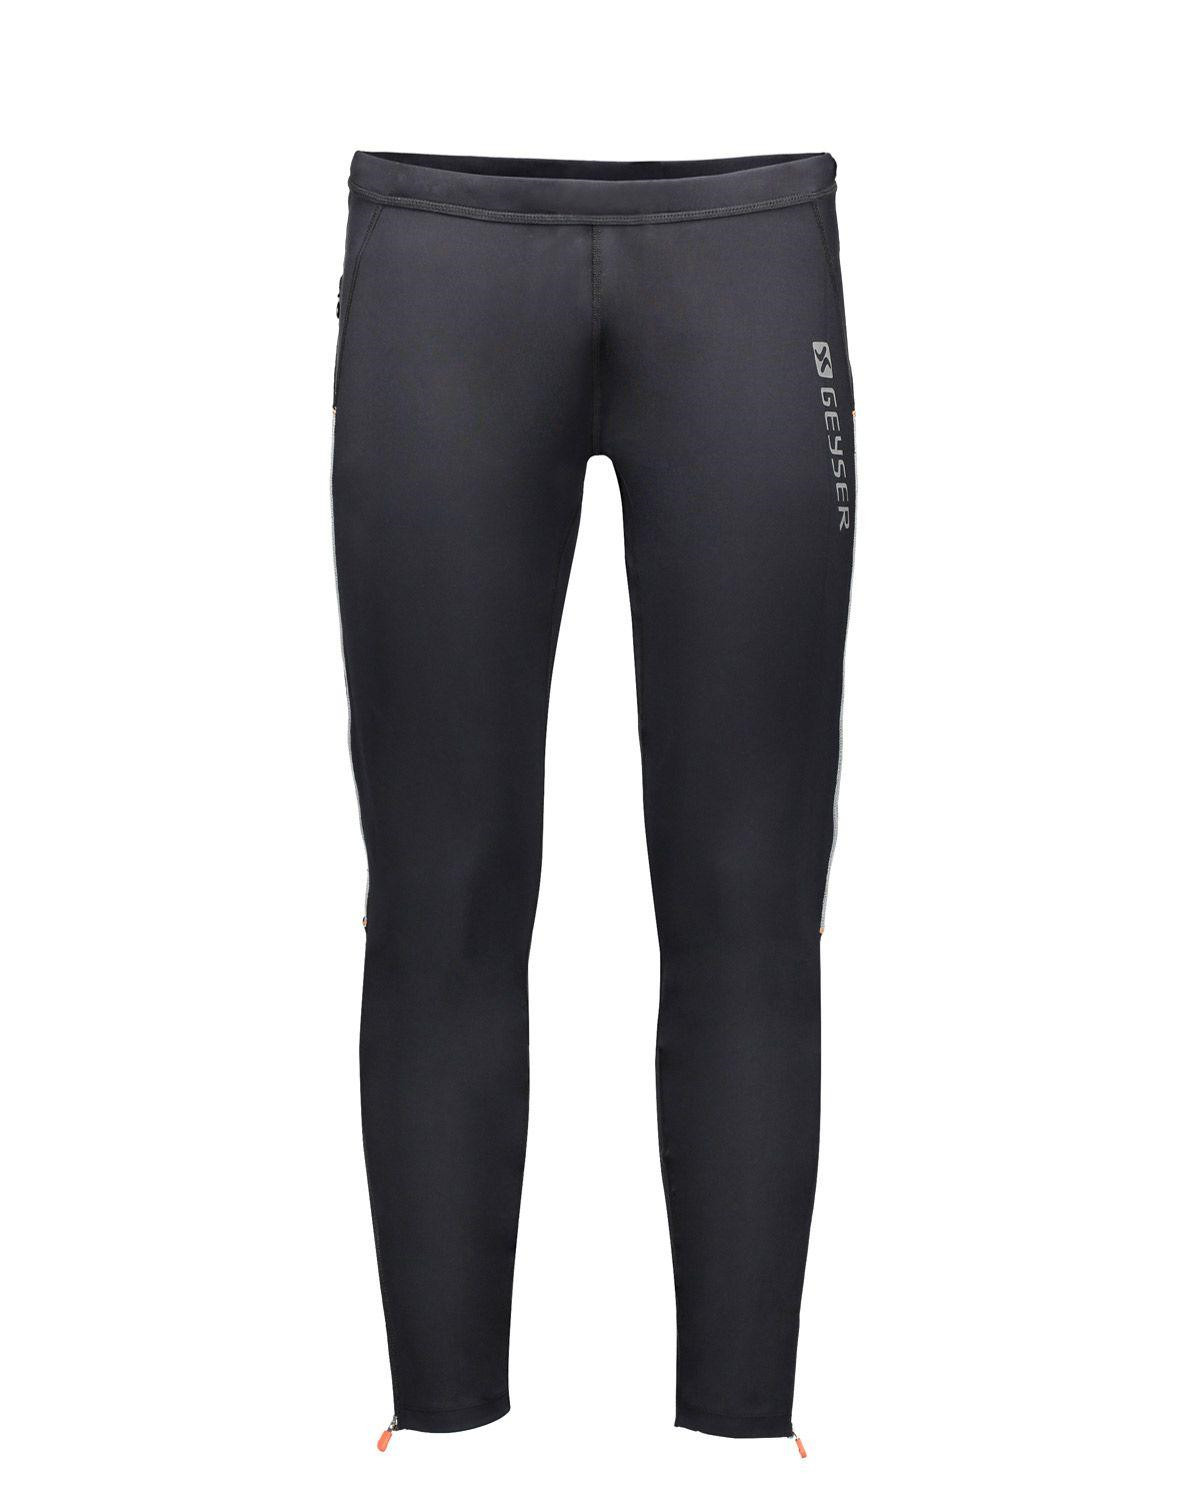 Image of   GEYSER Lange Tights (Sort, XS)